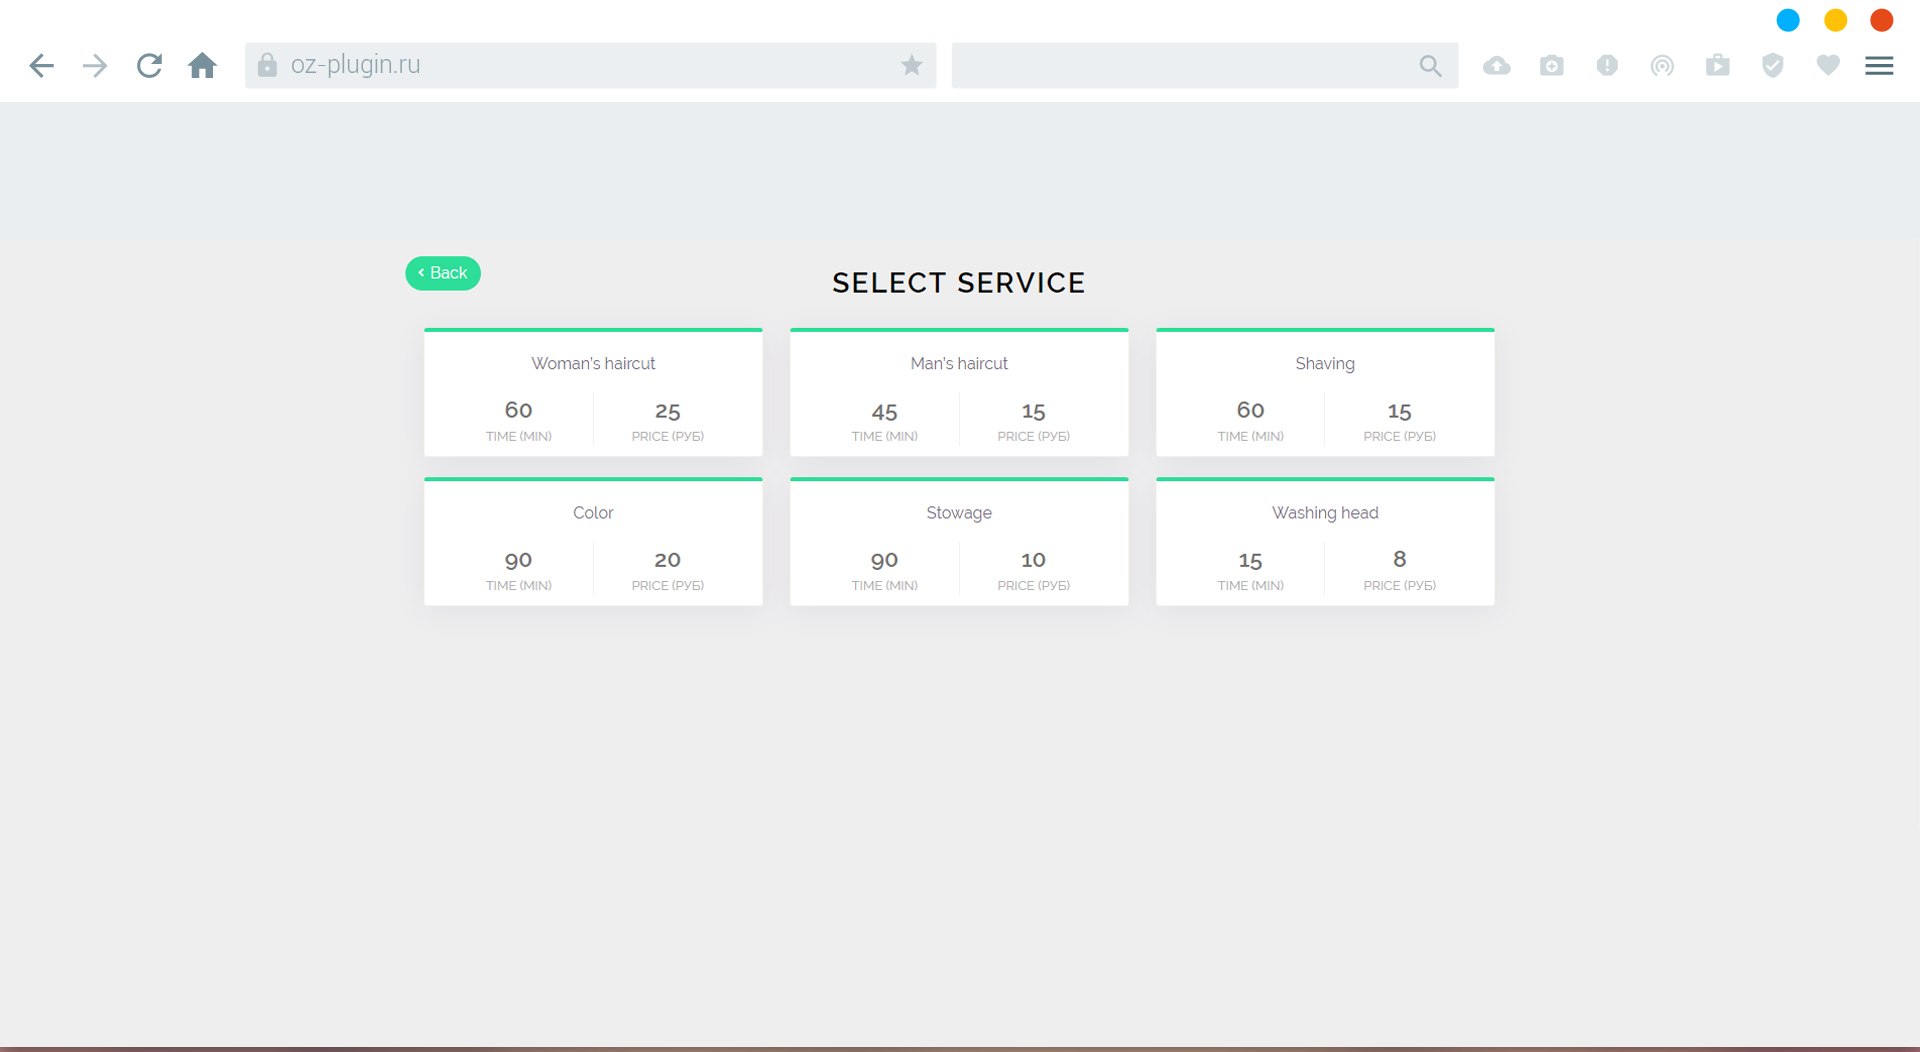 Fourth step. Select service